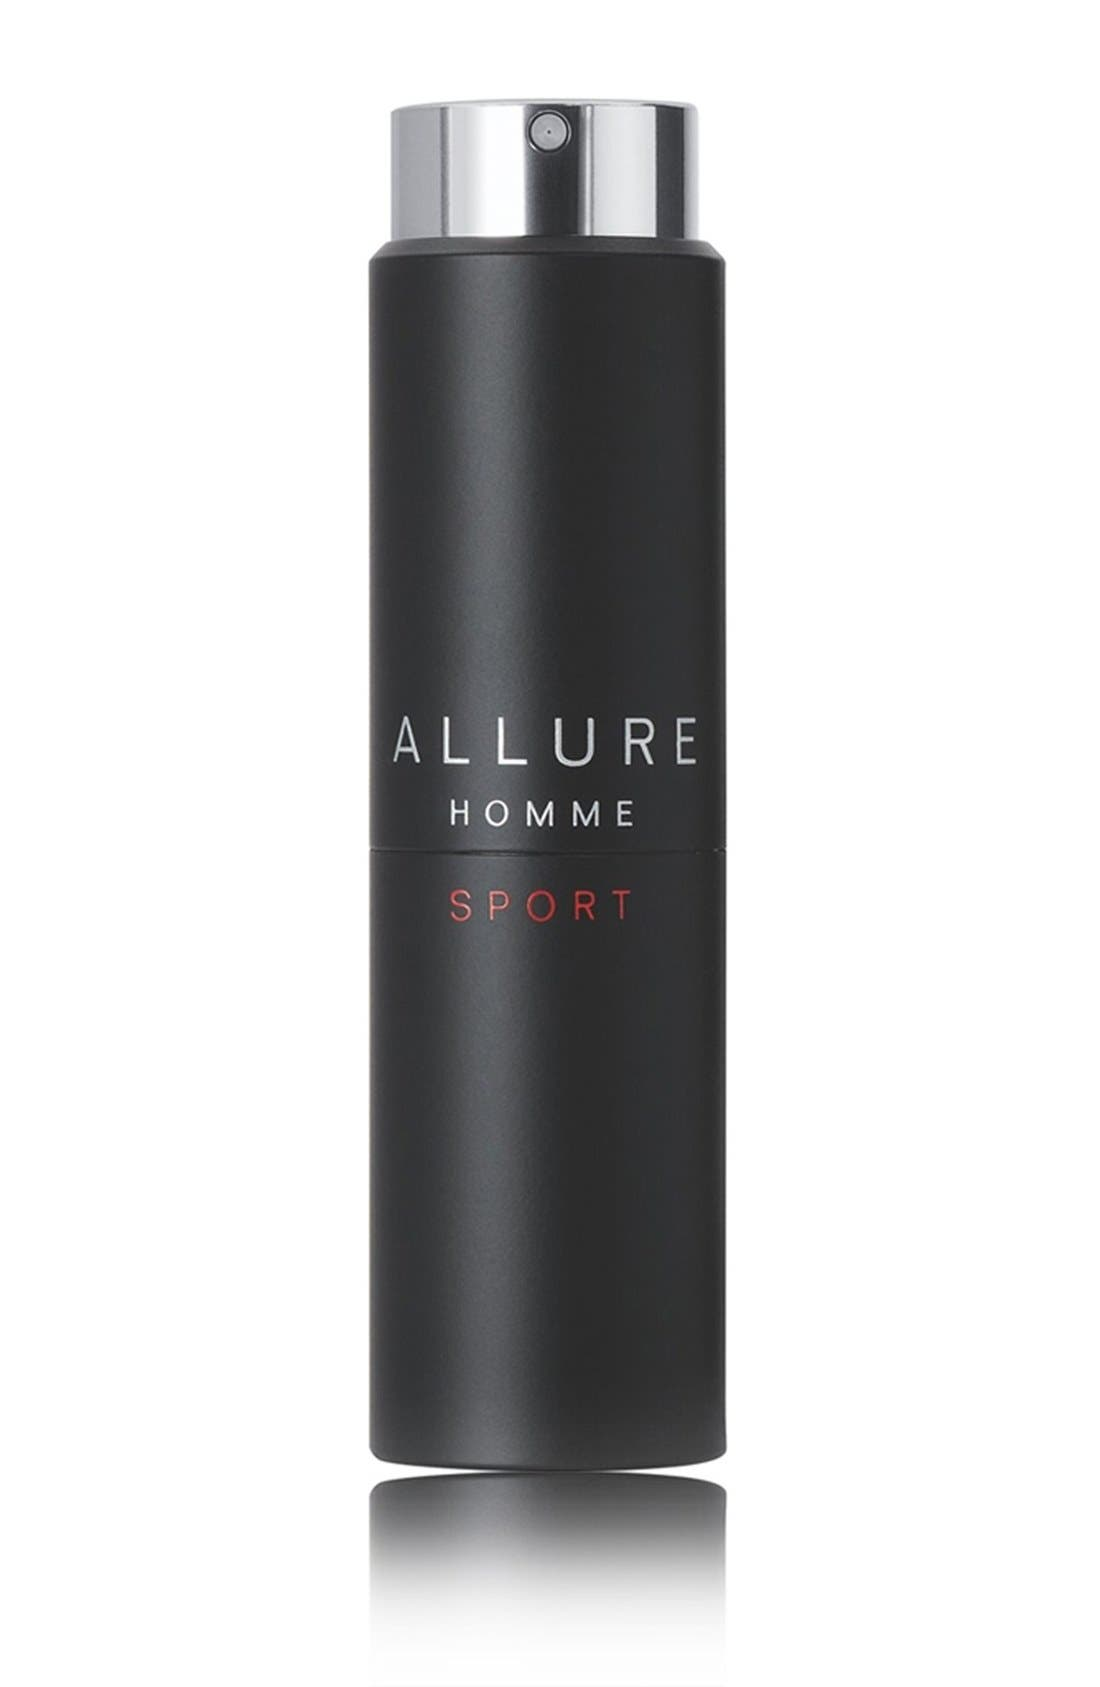 ALLURE HOMME SPORT Eau de Toilette Refillable Travel Spray,                             Main thumbnail 1, color,                             NO COLOR